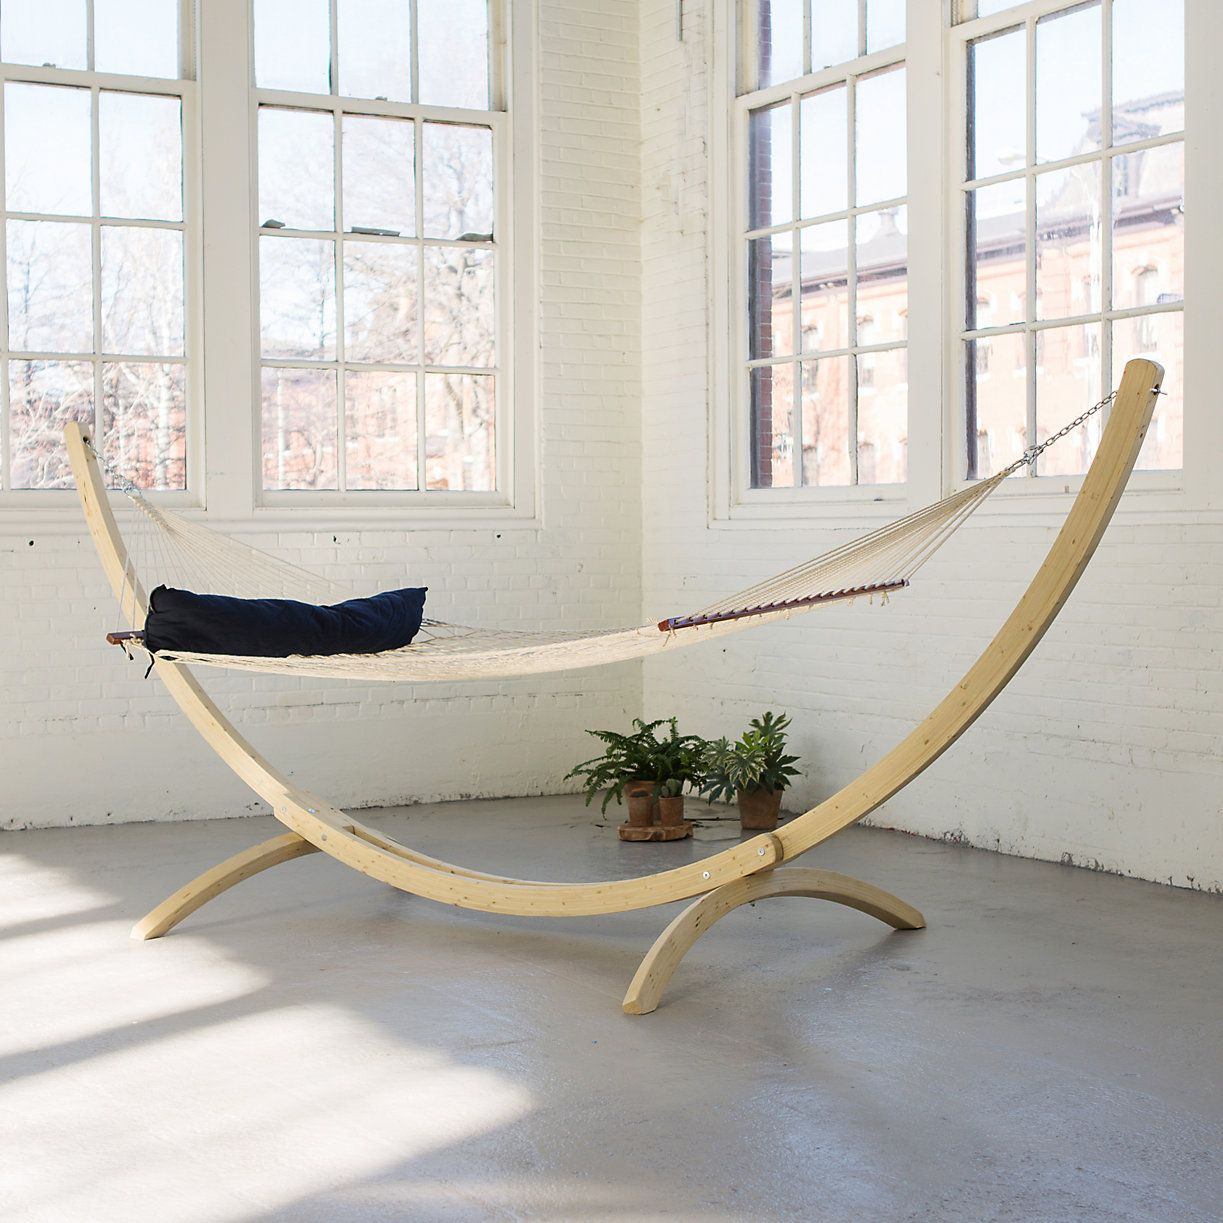 Rope net hammock catskills house pinterest hammock indoor